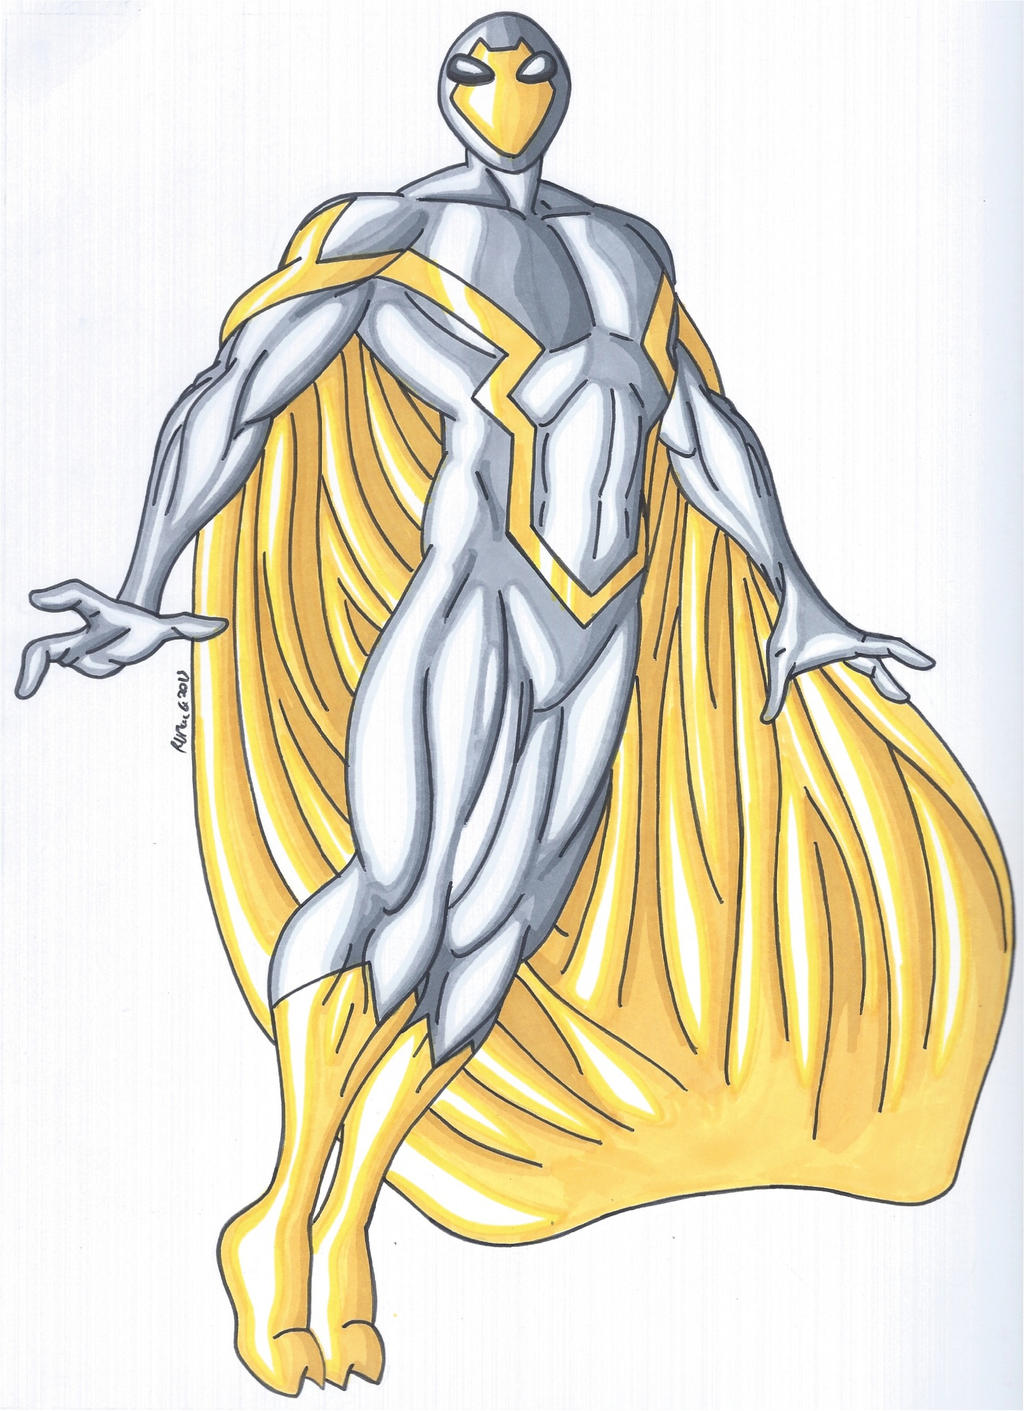 OCD- The Visitor, the Alien Superhero by RobertMacQuarrie1